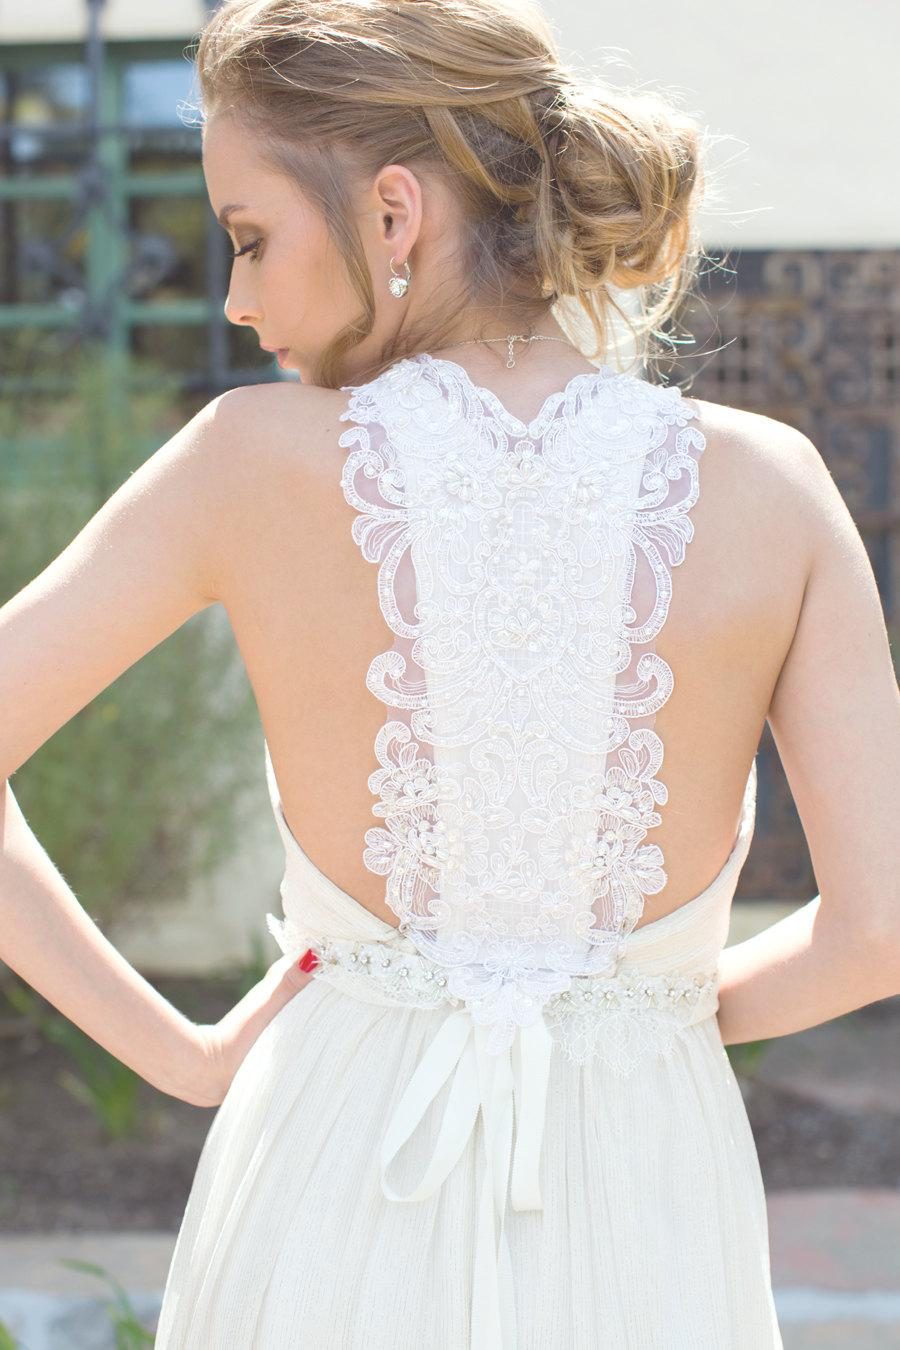 White bridal dress beach wedding dress bridal gown silk chiffon white bridal dress beach wedding dress bridal gown silk chiffon lace sexy back low back for destination beach weddings off white ombrellifo Image collections